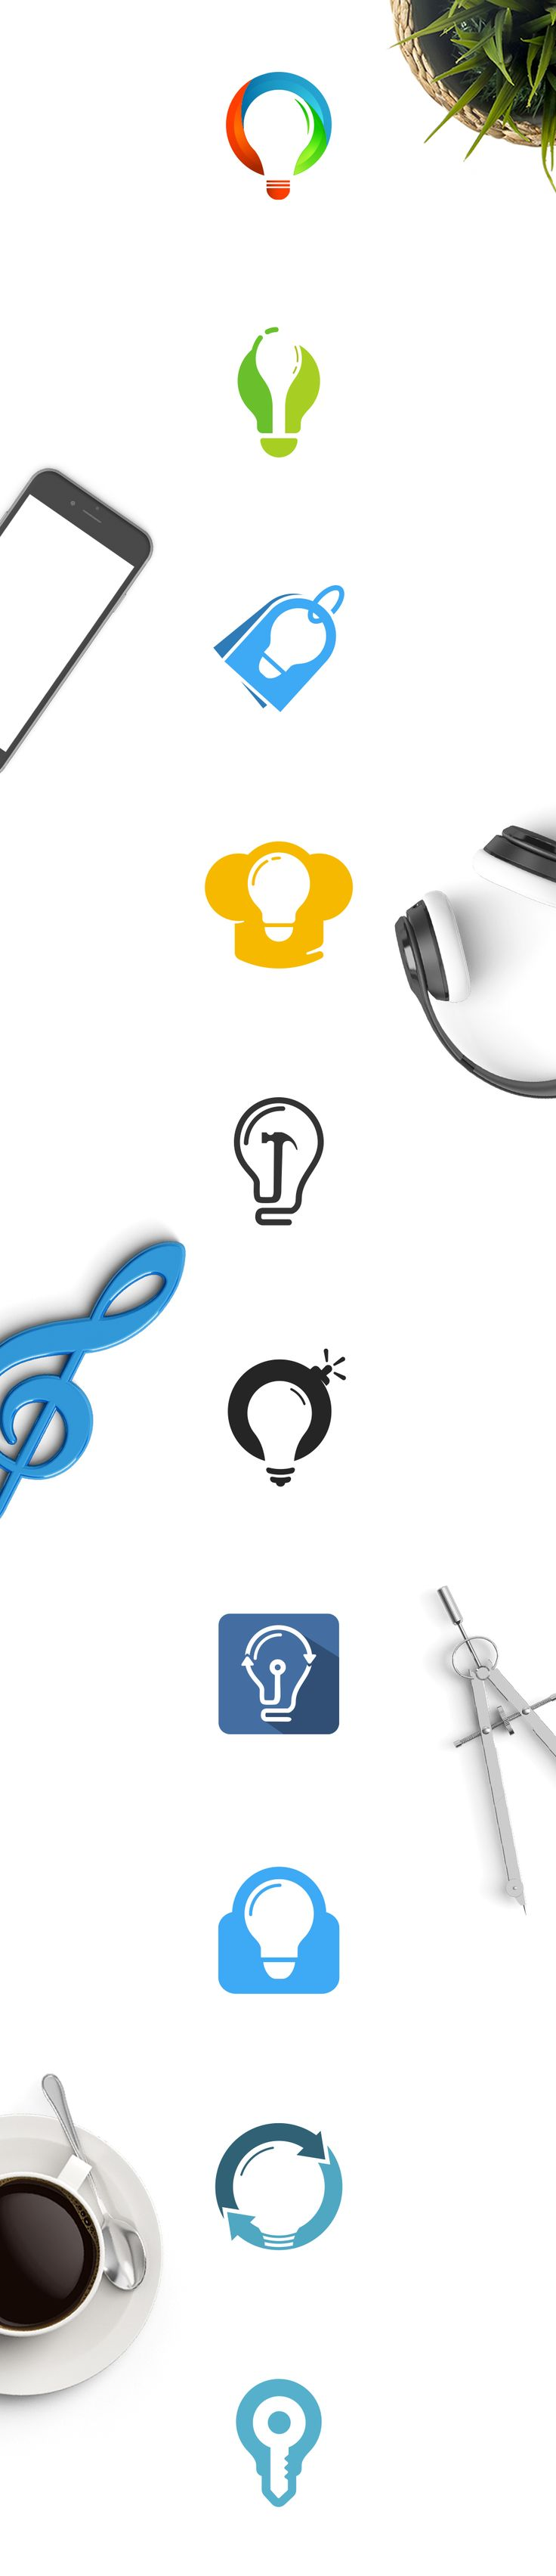 Cool bulb designs. Awesome logo for sale ! Hurry up and get the logo you like !  Avarage price: ONLY 149$ - Extended License